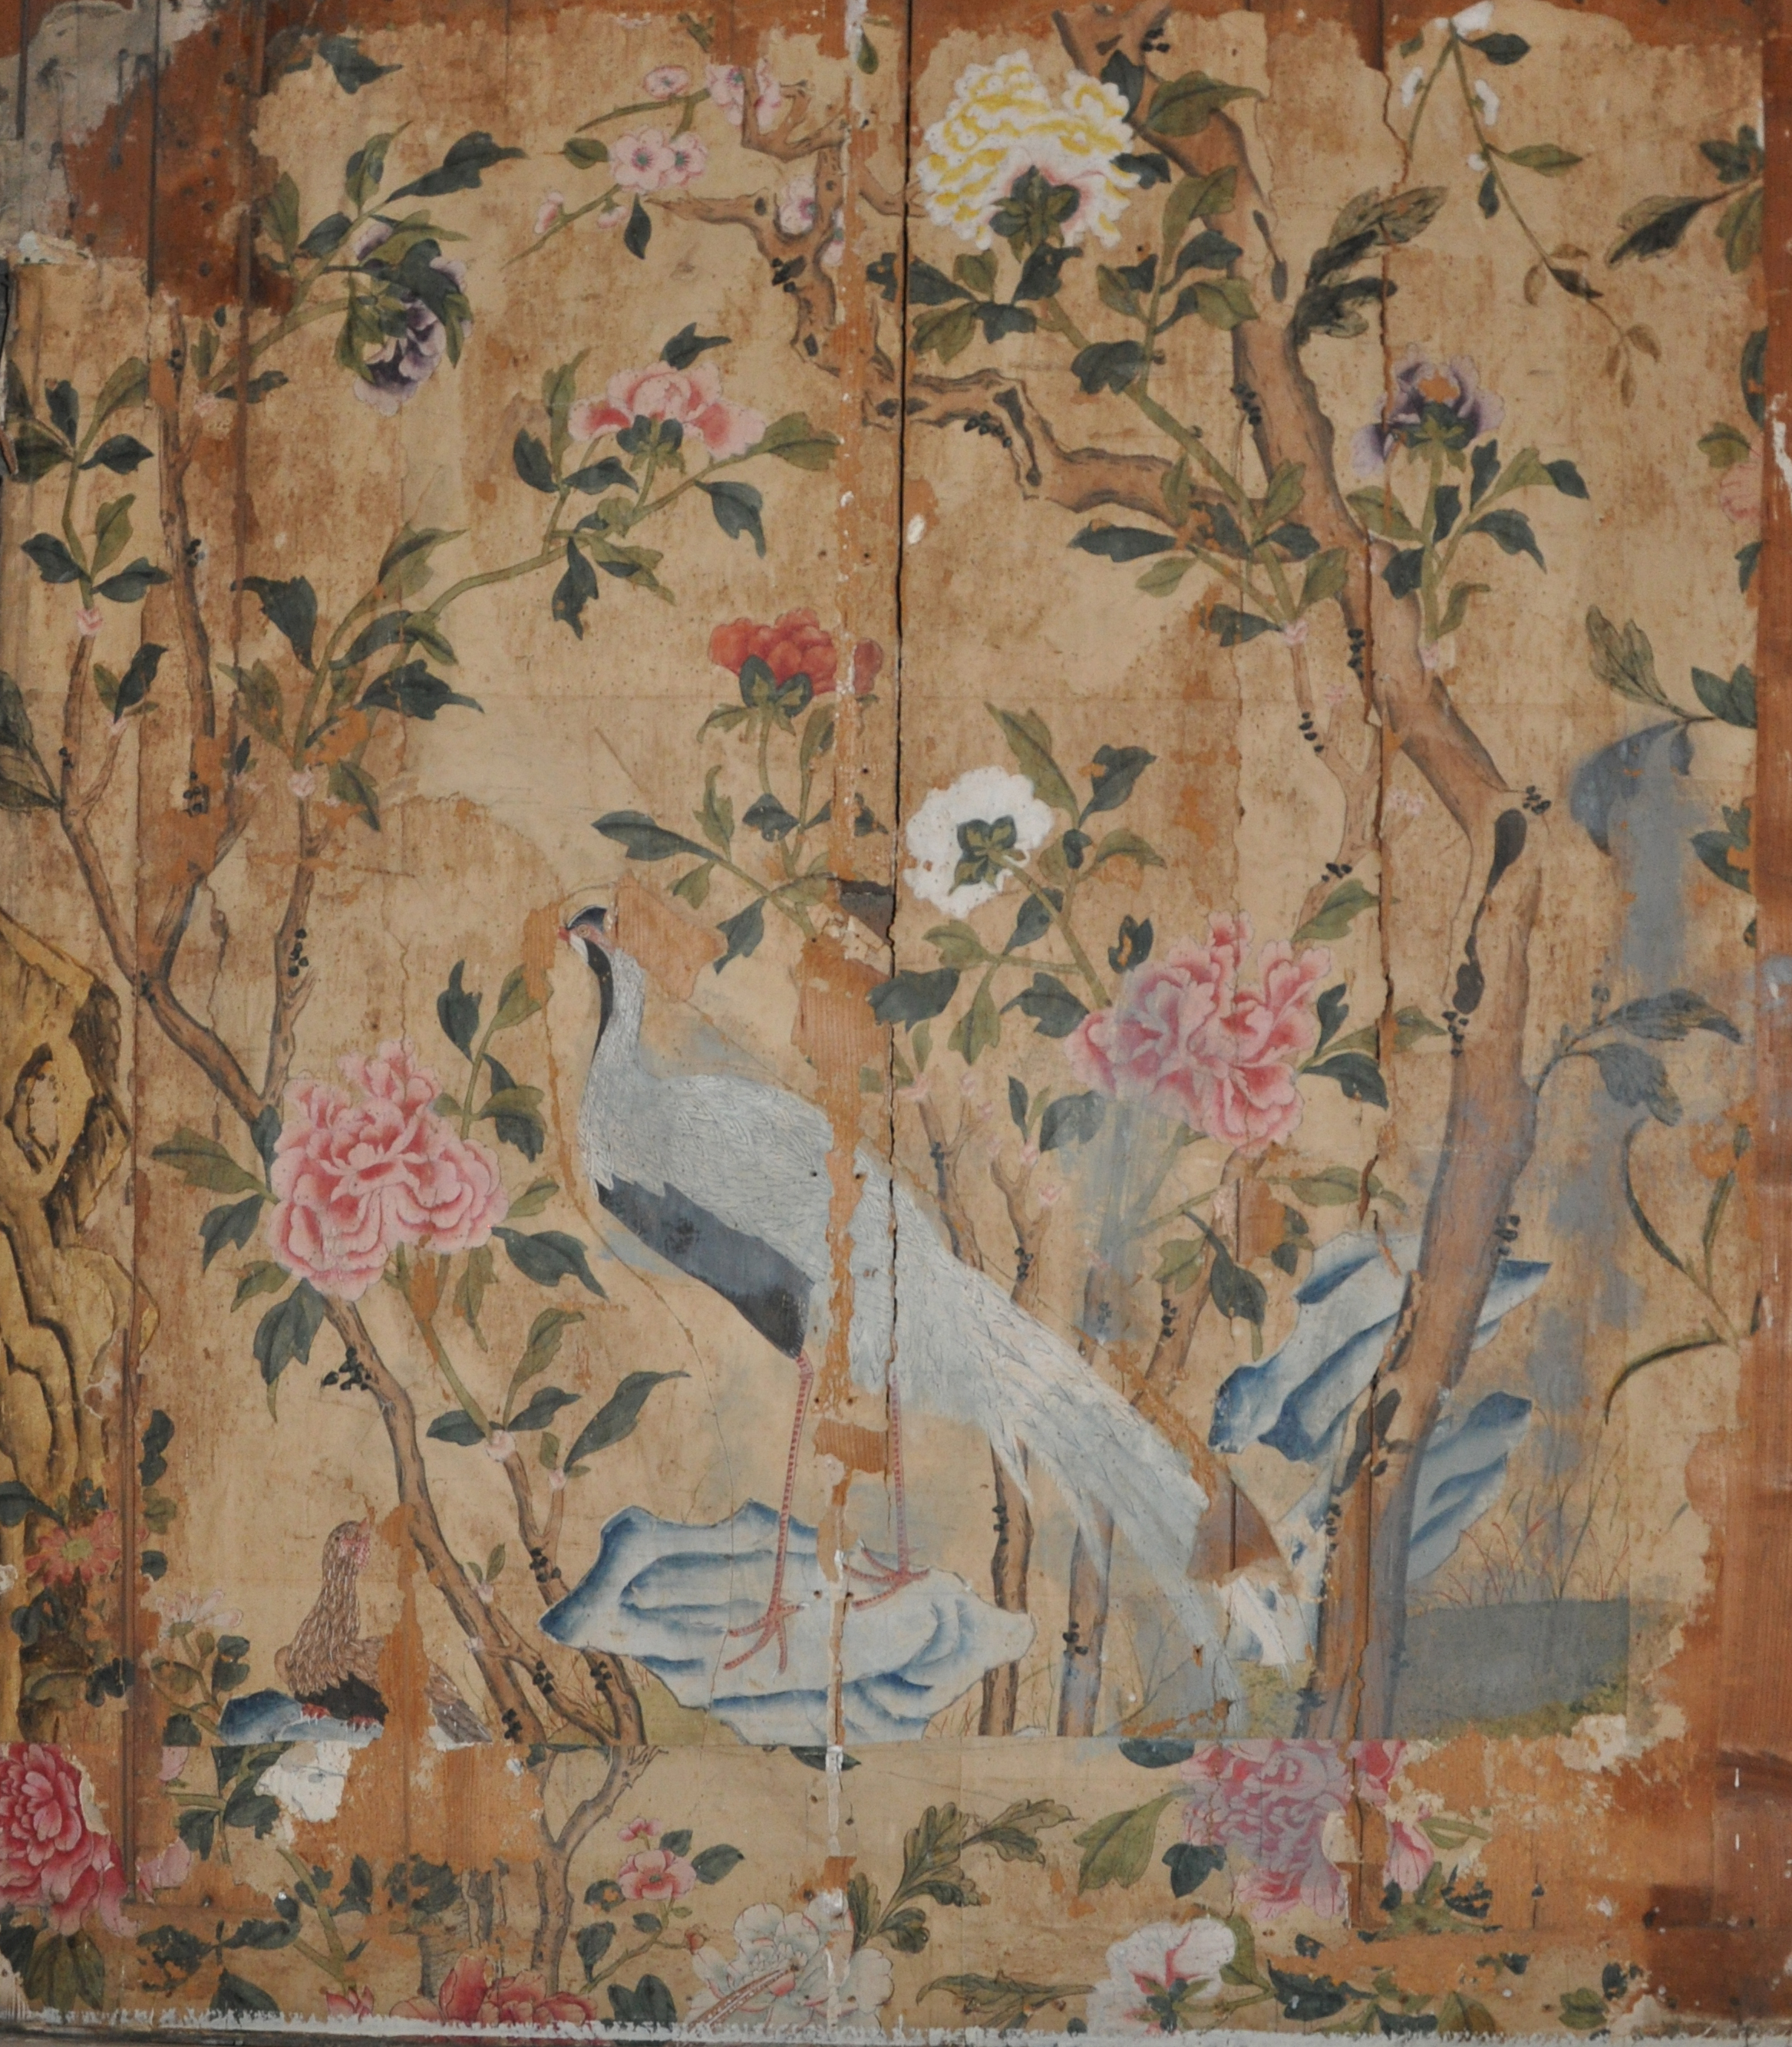 18th century wallpaper crivelli - photo #16